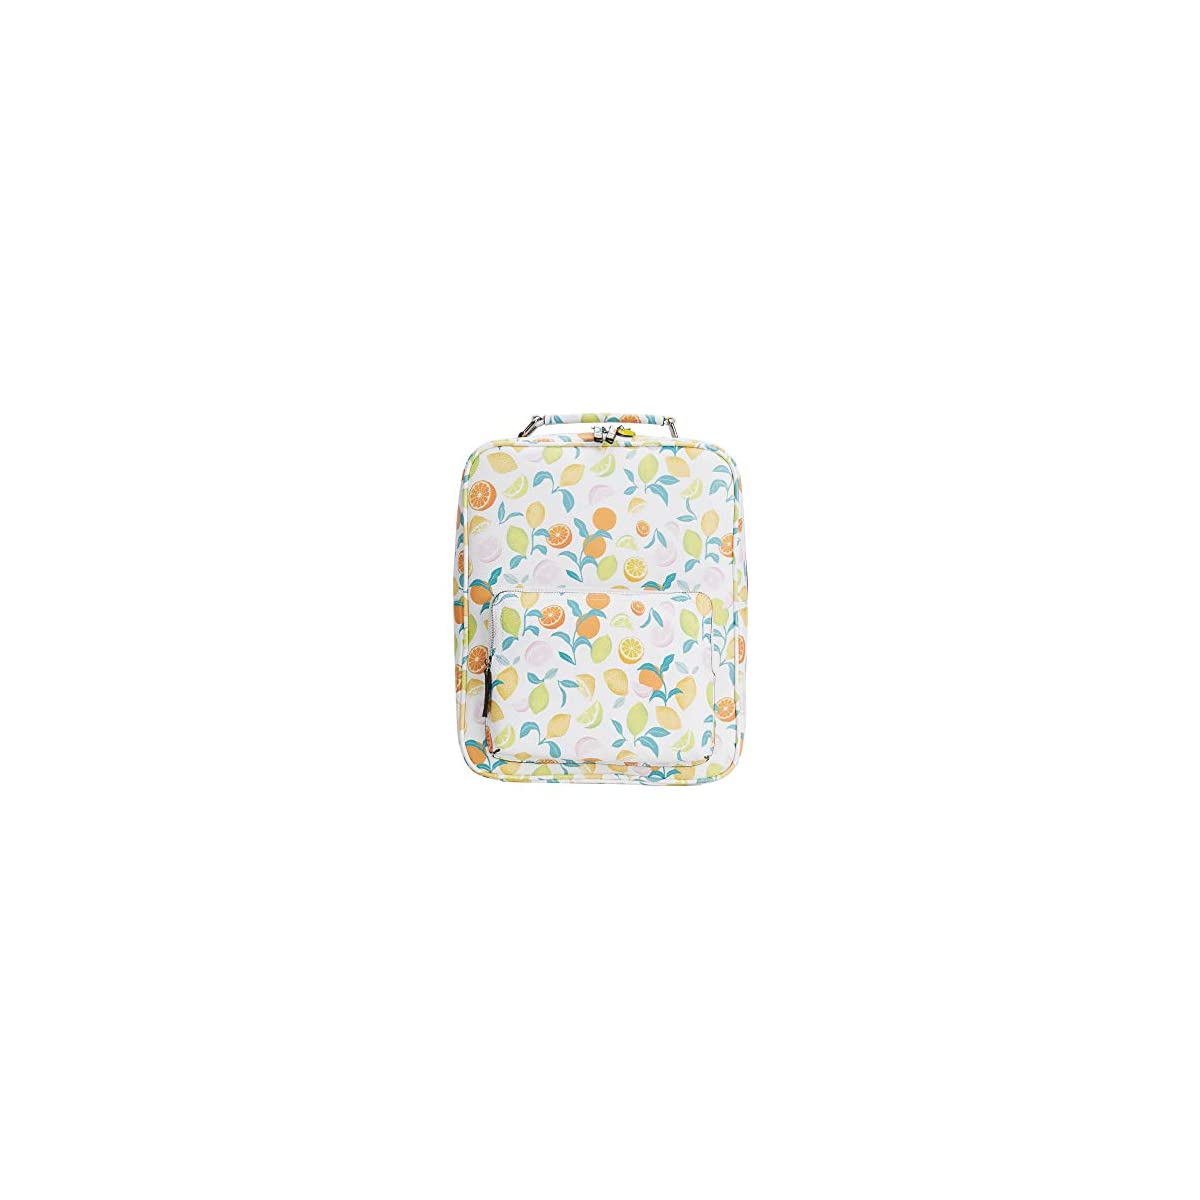 41WUnNZ3EDL. SS1200  - Parfois - Mochila Citric Travel - Mujeres